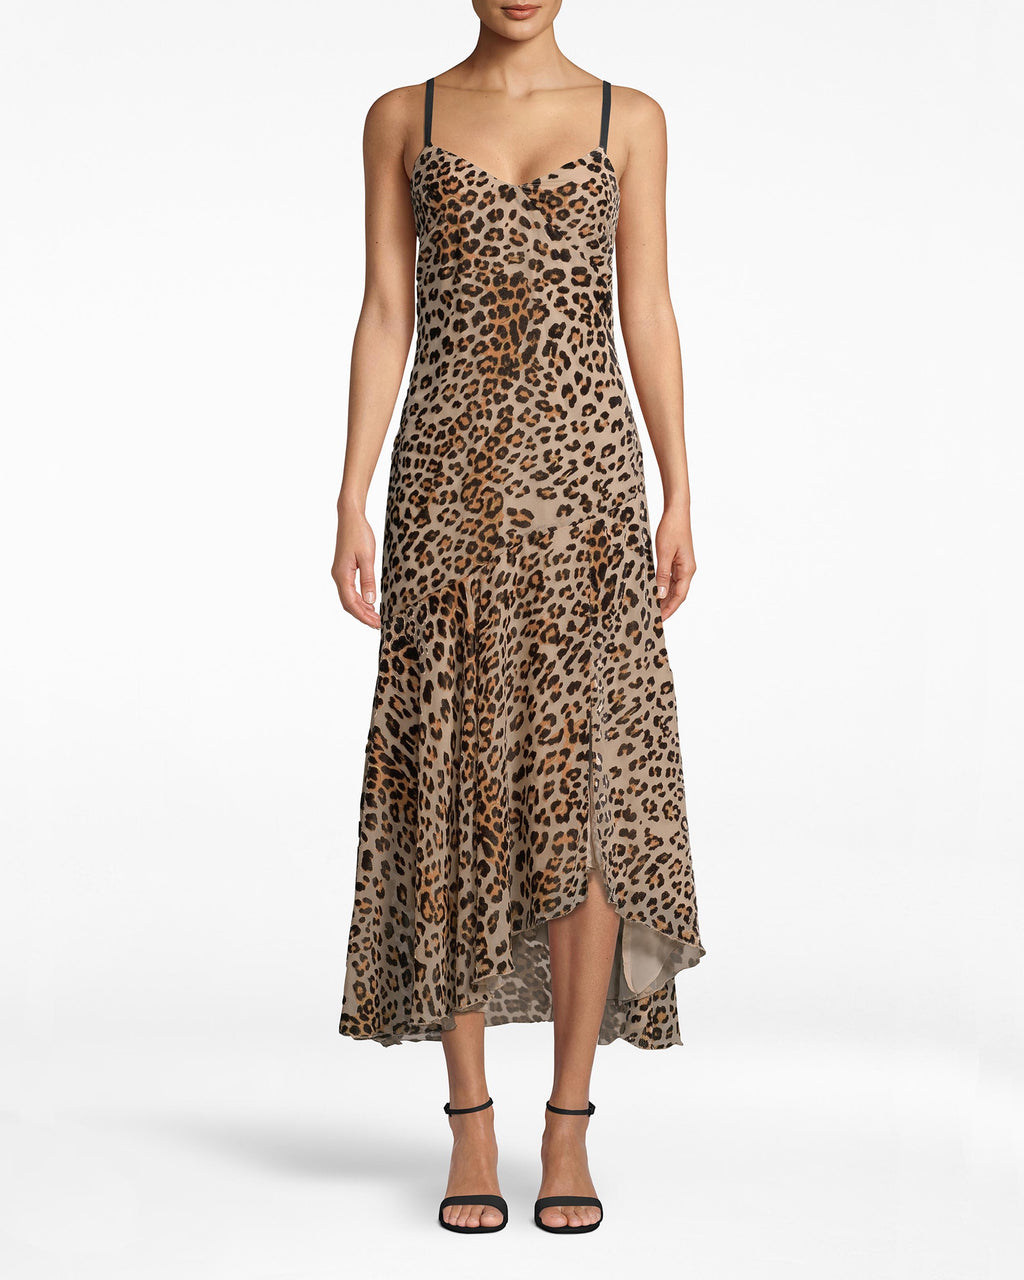 BN20057 - LEOPARD BURNOUT SLIP DRESS - dresses - midi - Black straps structure the leopard body of this party slip dress. Skirt pleats lead to the asymmetrical hem and hints of the slip. Pair back with high ankle heels. Exposed back zipper for closure.